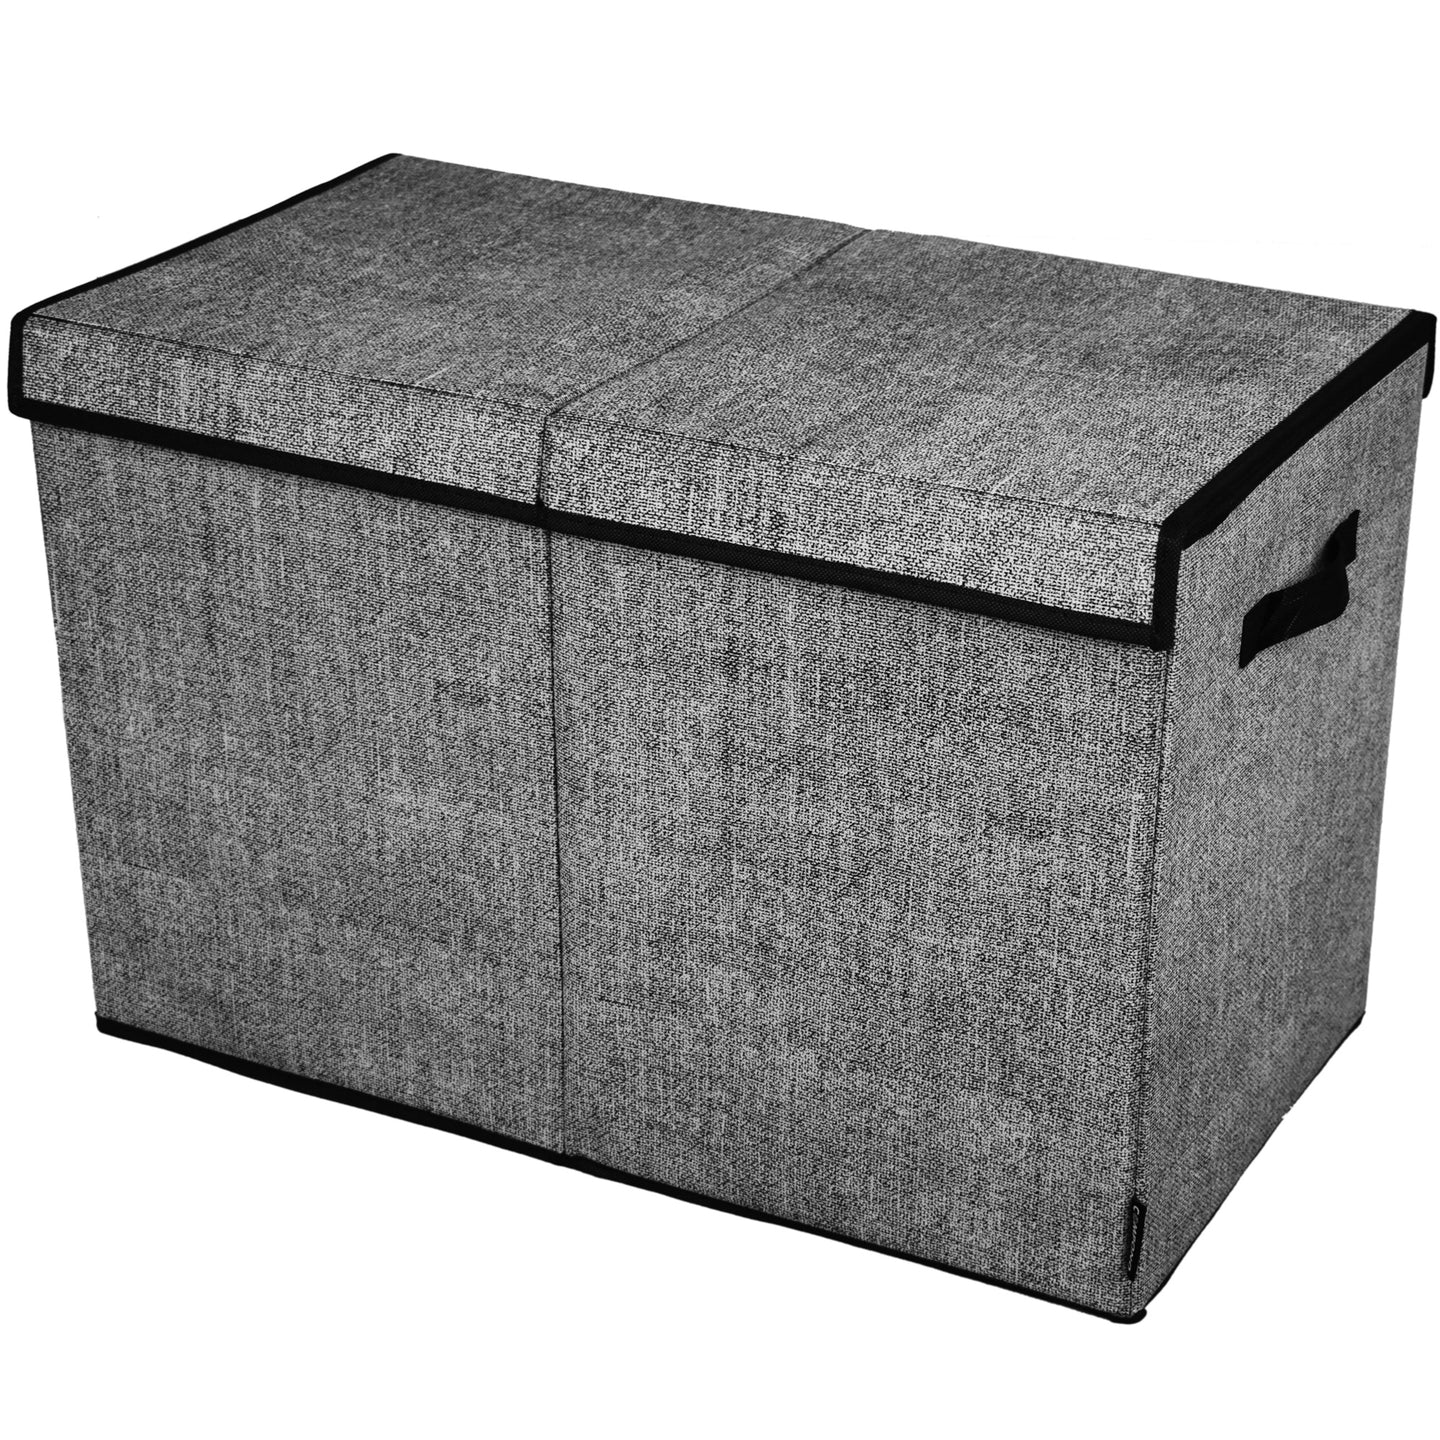 COMPONO Dark Grey Storage Box with Flip Top